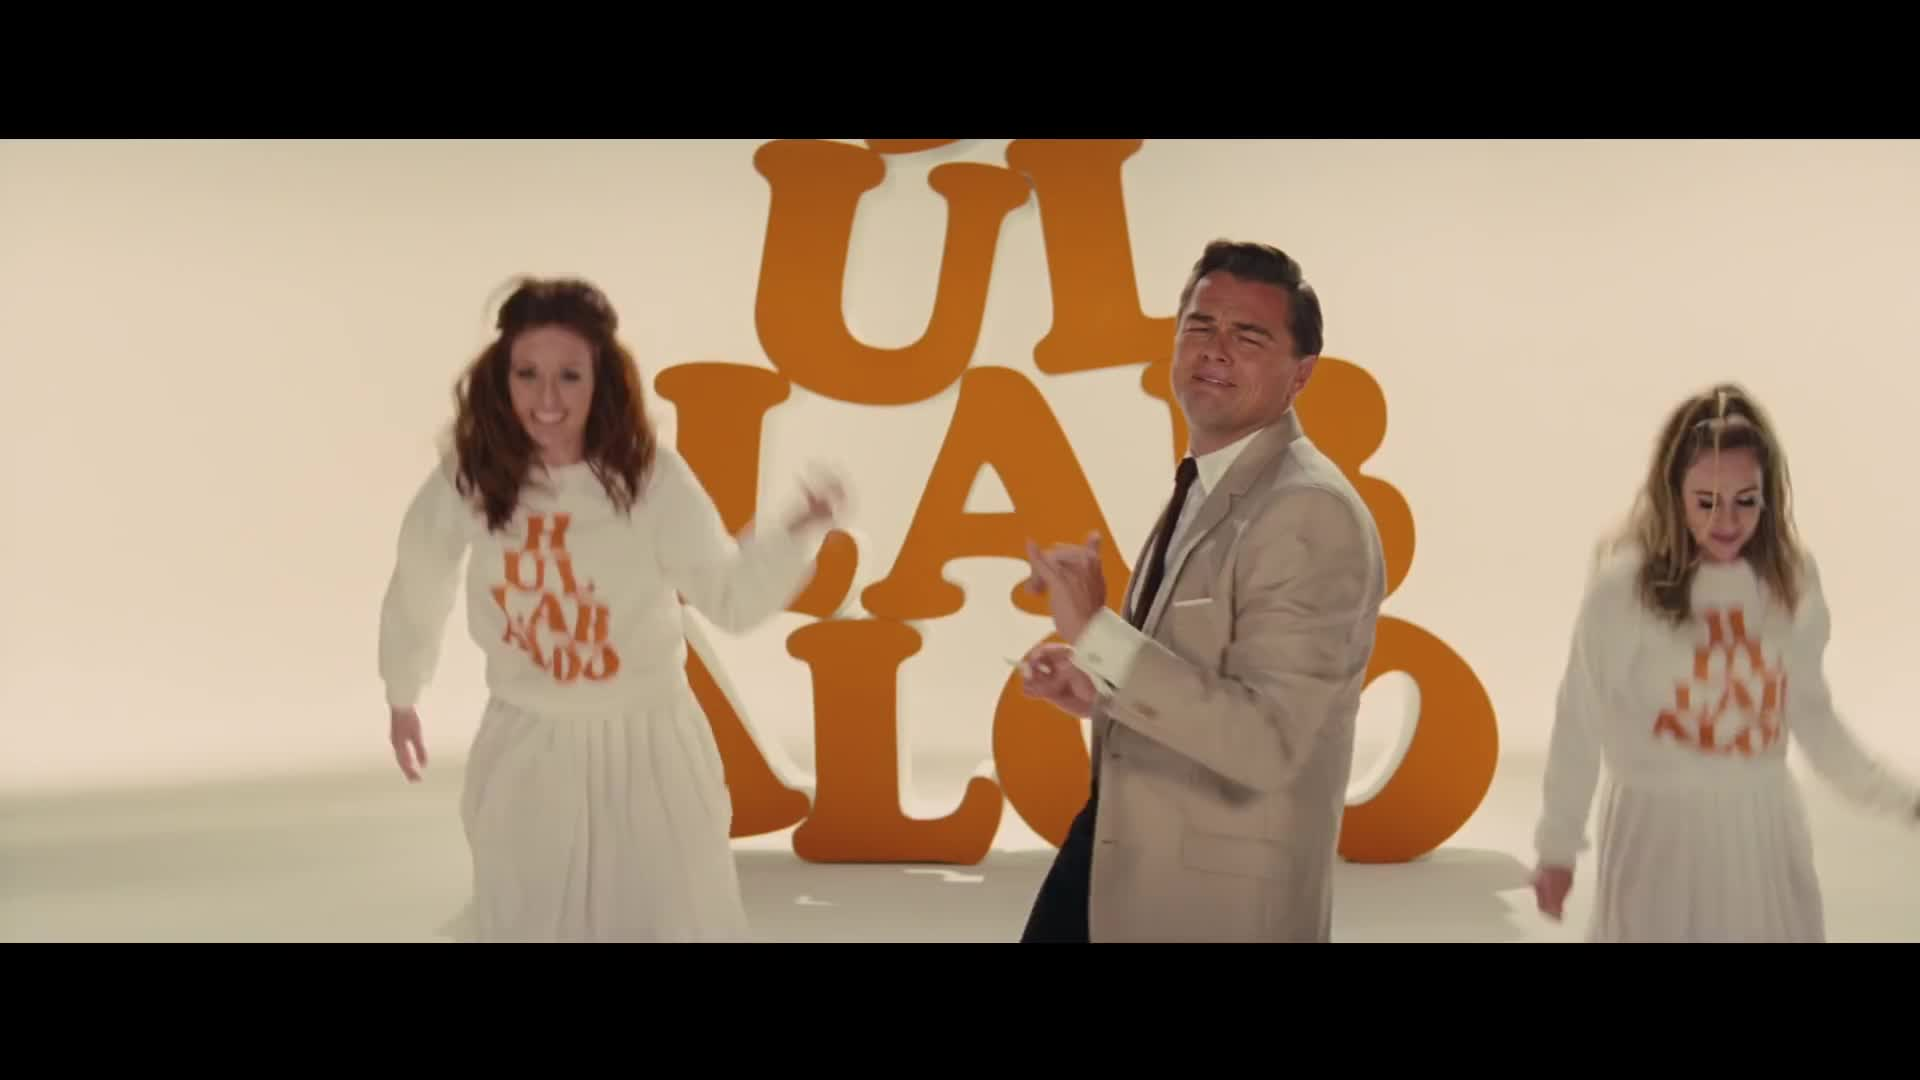 brad pitt, dicaprio, hollywood, leo dicaprio, leonardo dicaprio, margot, once in hollywood, quentin, quentin tarantino, tarantino, ONCE UPON A TIME IN HOLLYWOOD - Official Teaser Trailer (HD) GIFs